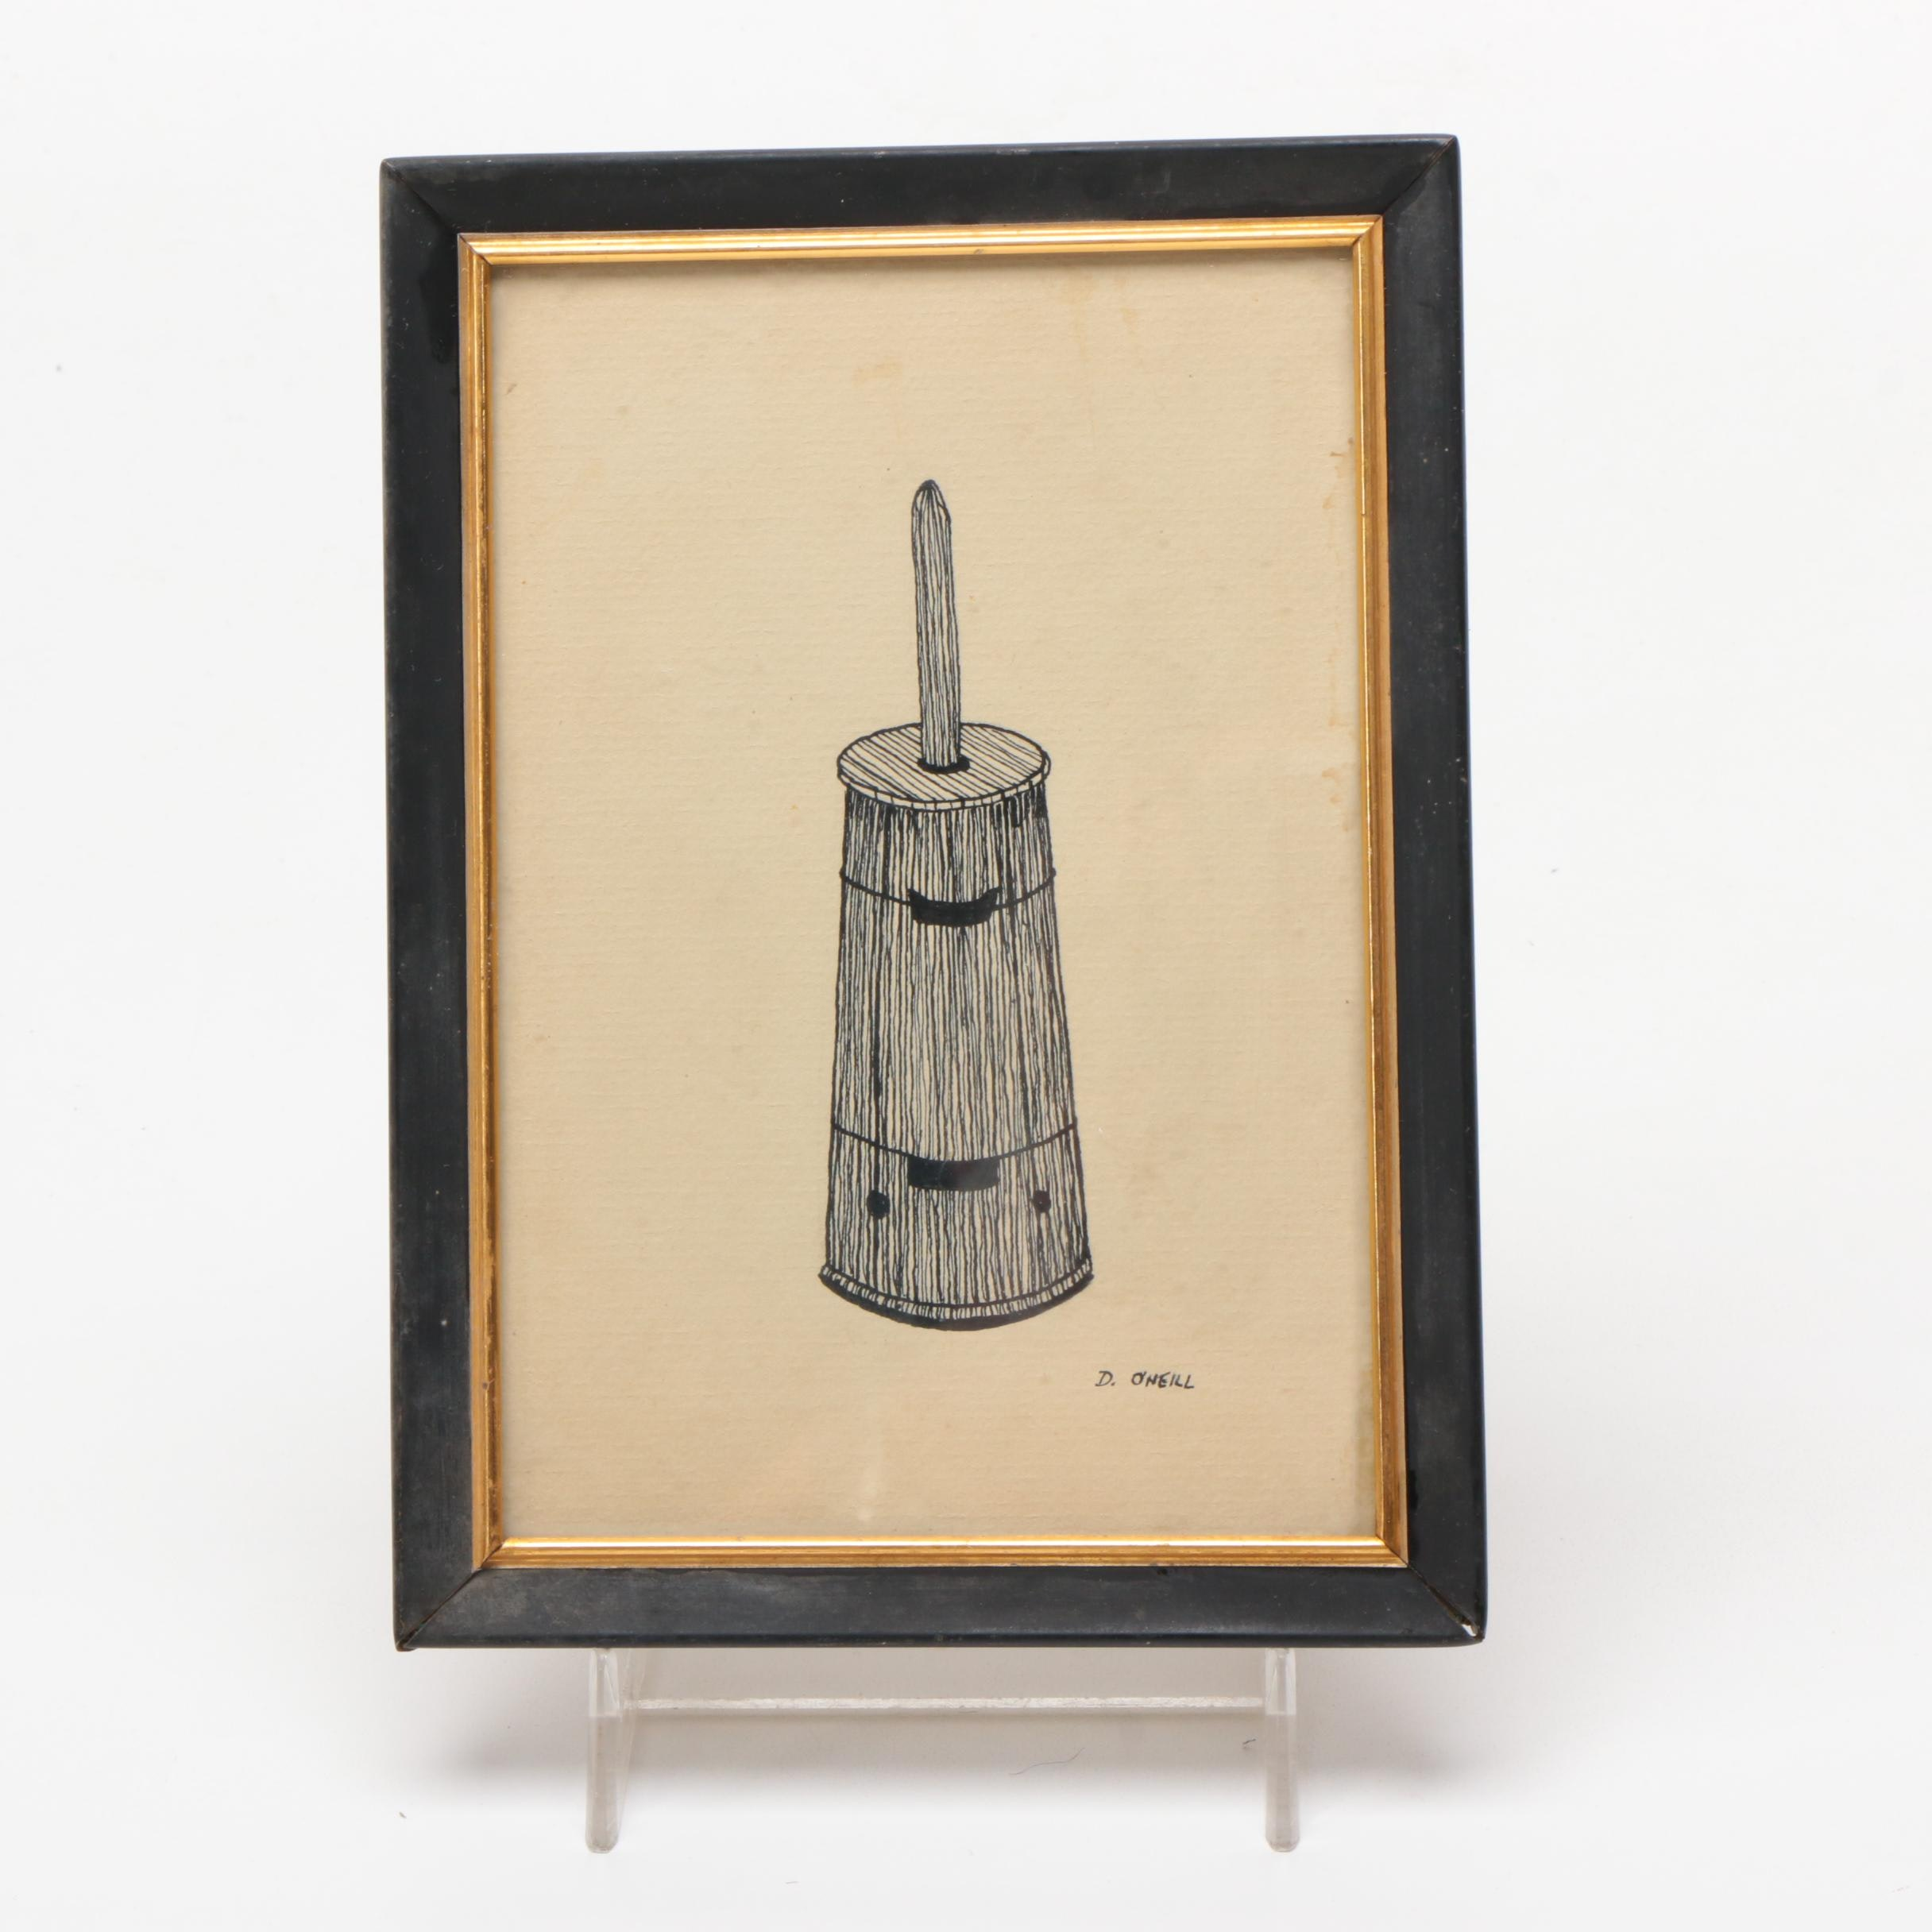 Ink Drawing of a Butter Churn by D. O'Neill